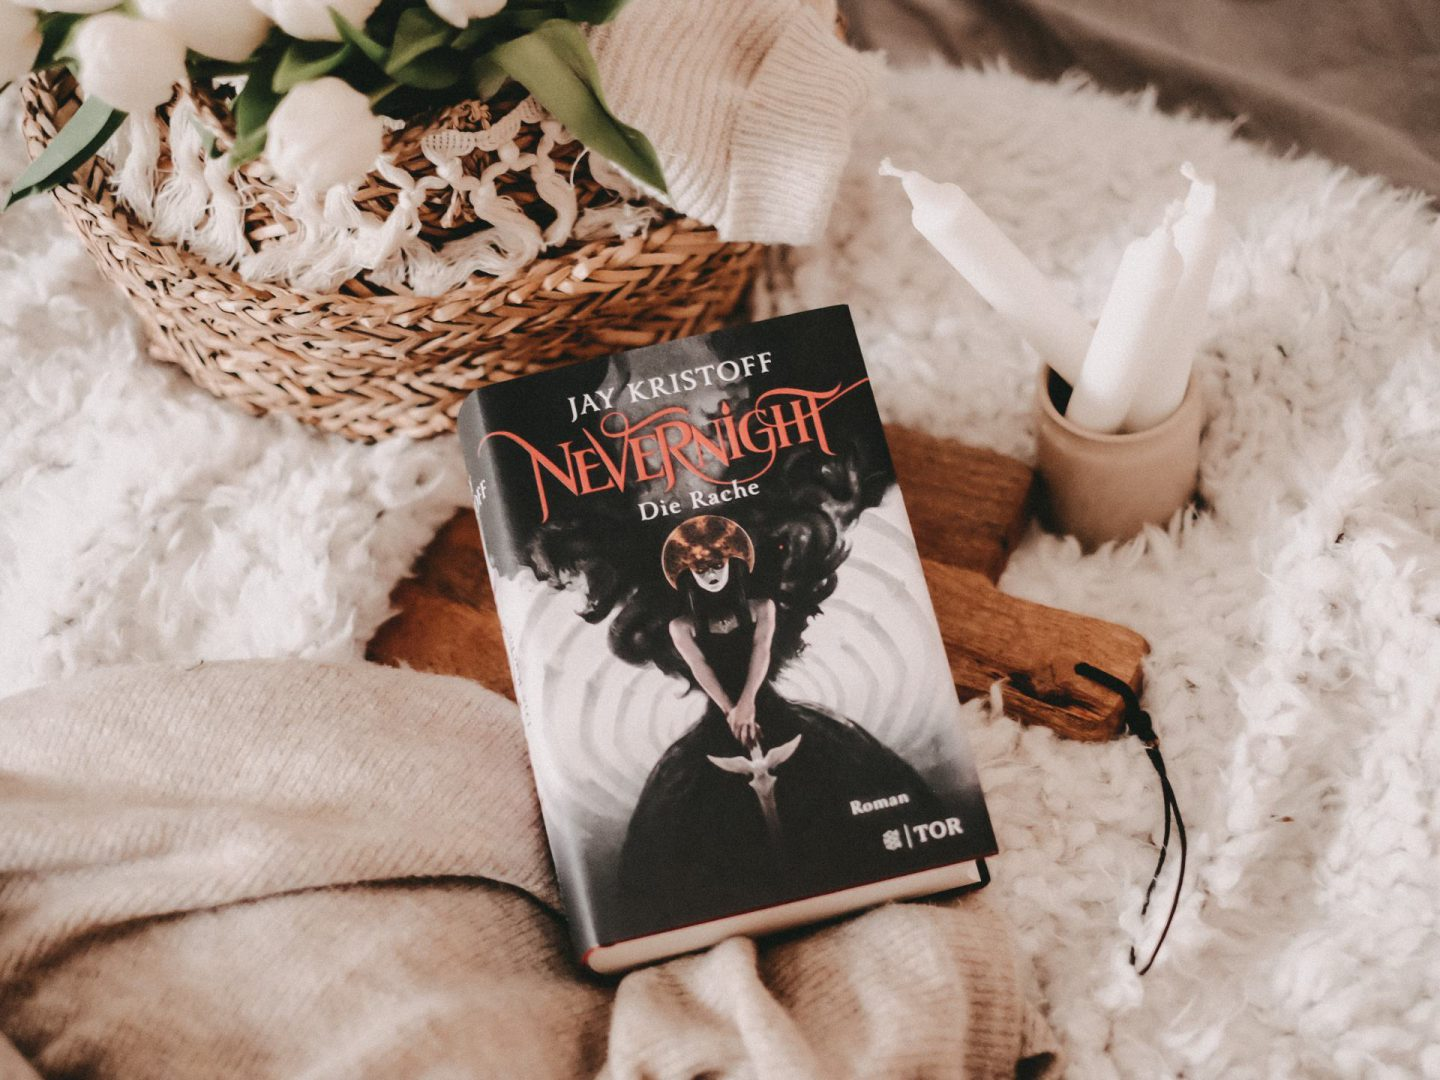 Rezension Jay Kristoff – Nevernight: Die Rache